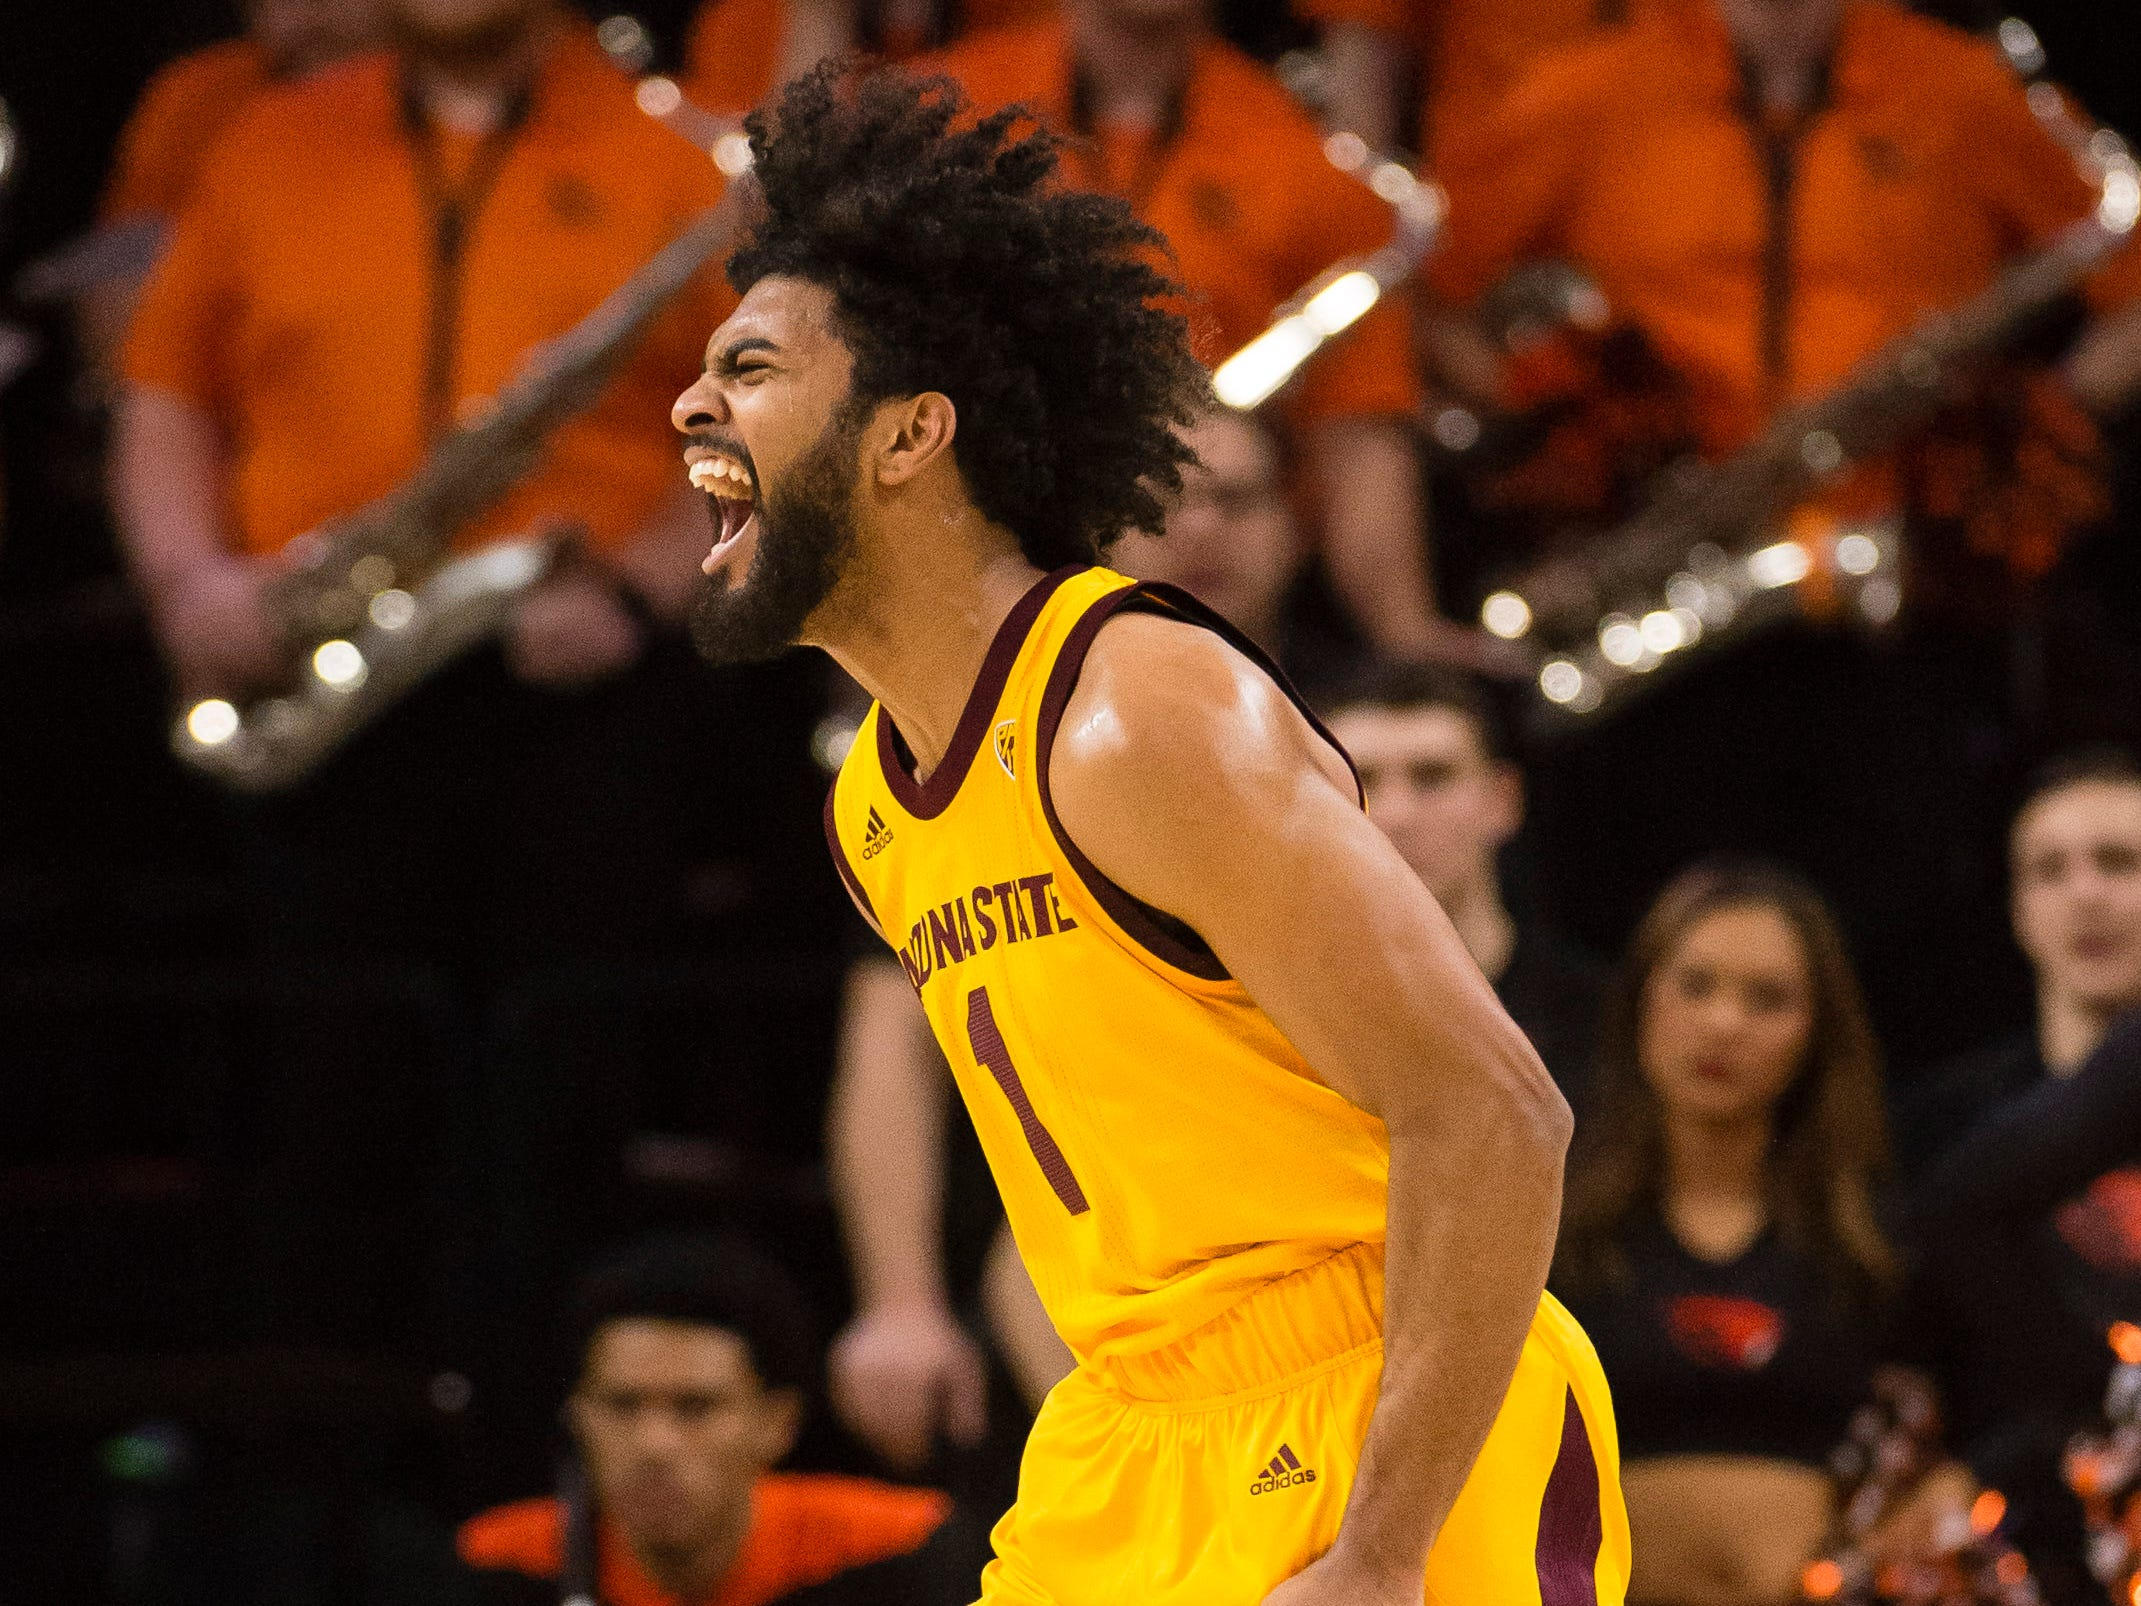 Mar 3, 2019; Corvallis, OR, USA; Arizona State Sun Devils guard Remy Martin (1) reacts after an Oregon State Beavers is called for an offensive foul during the first half at Gill Coliseum.